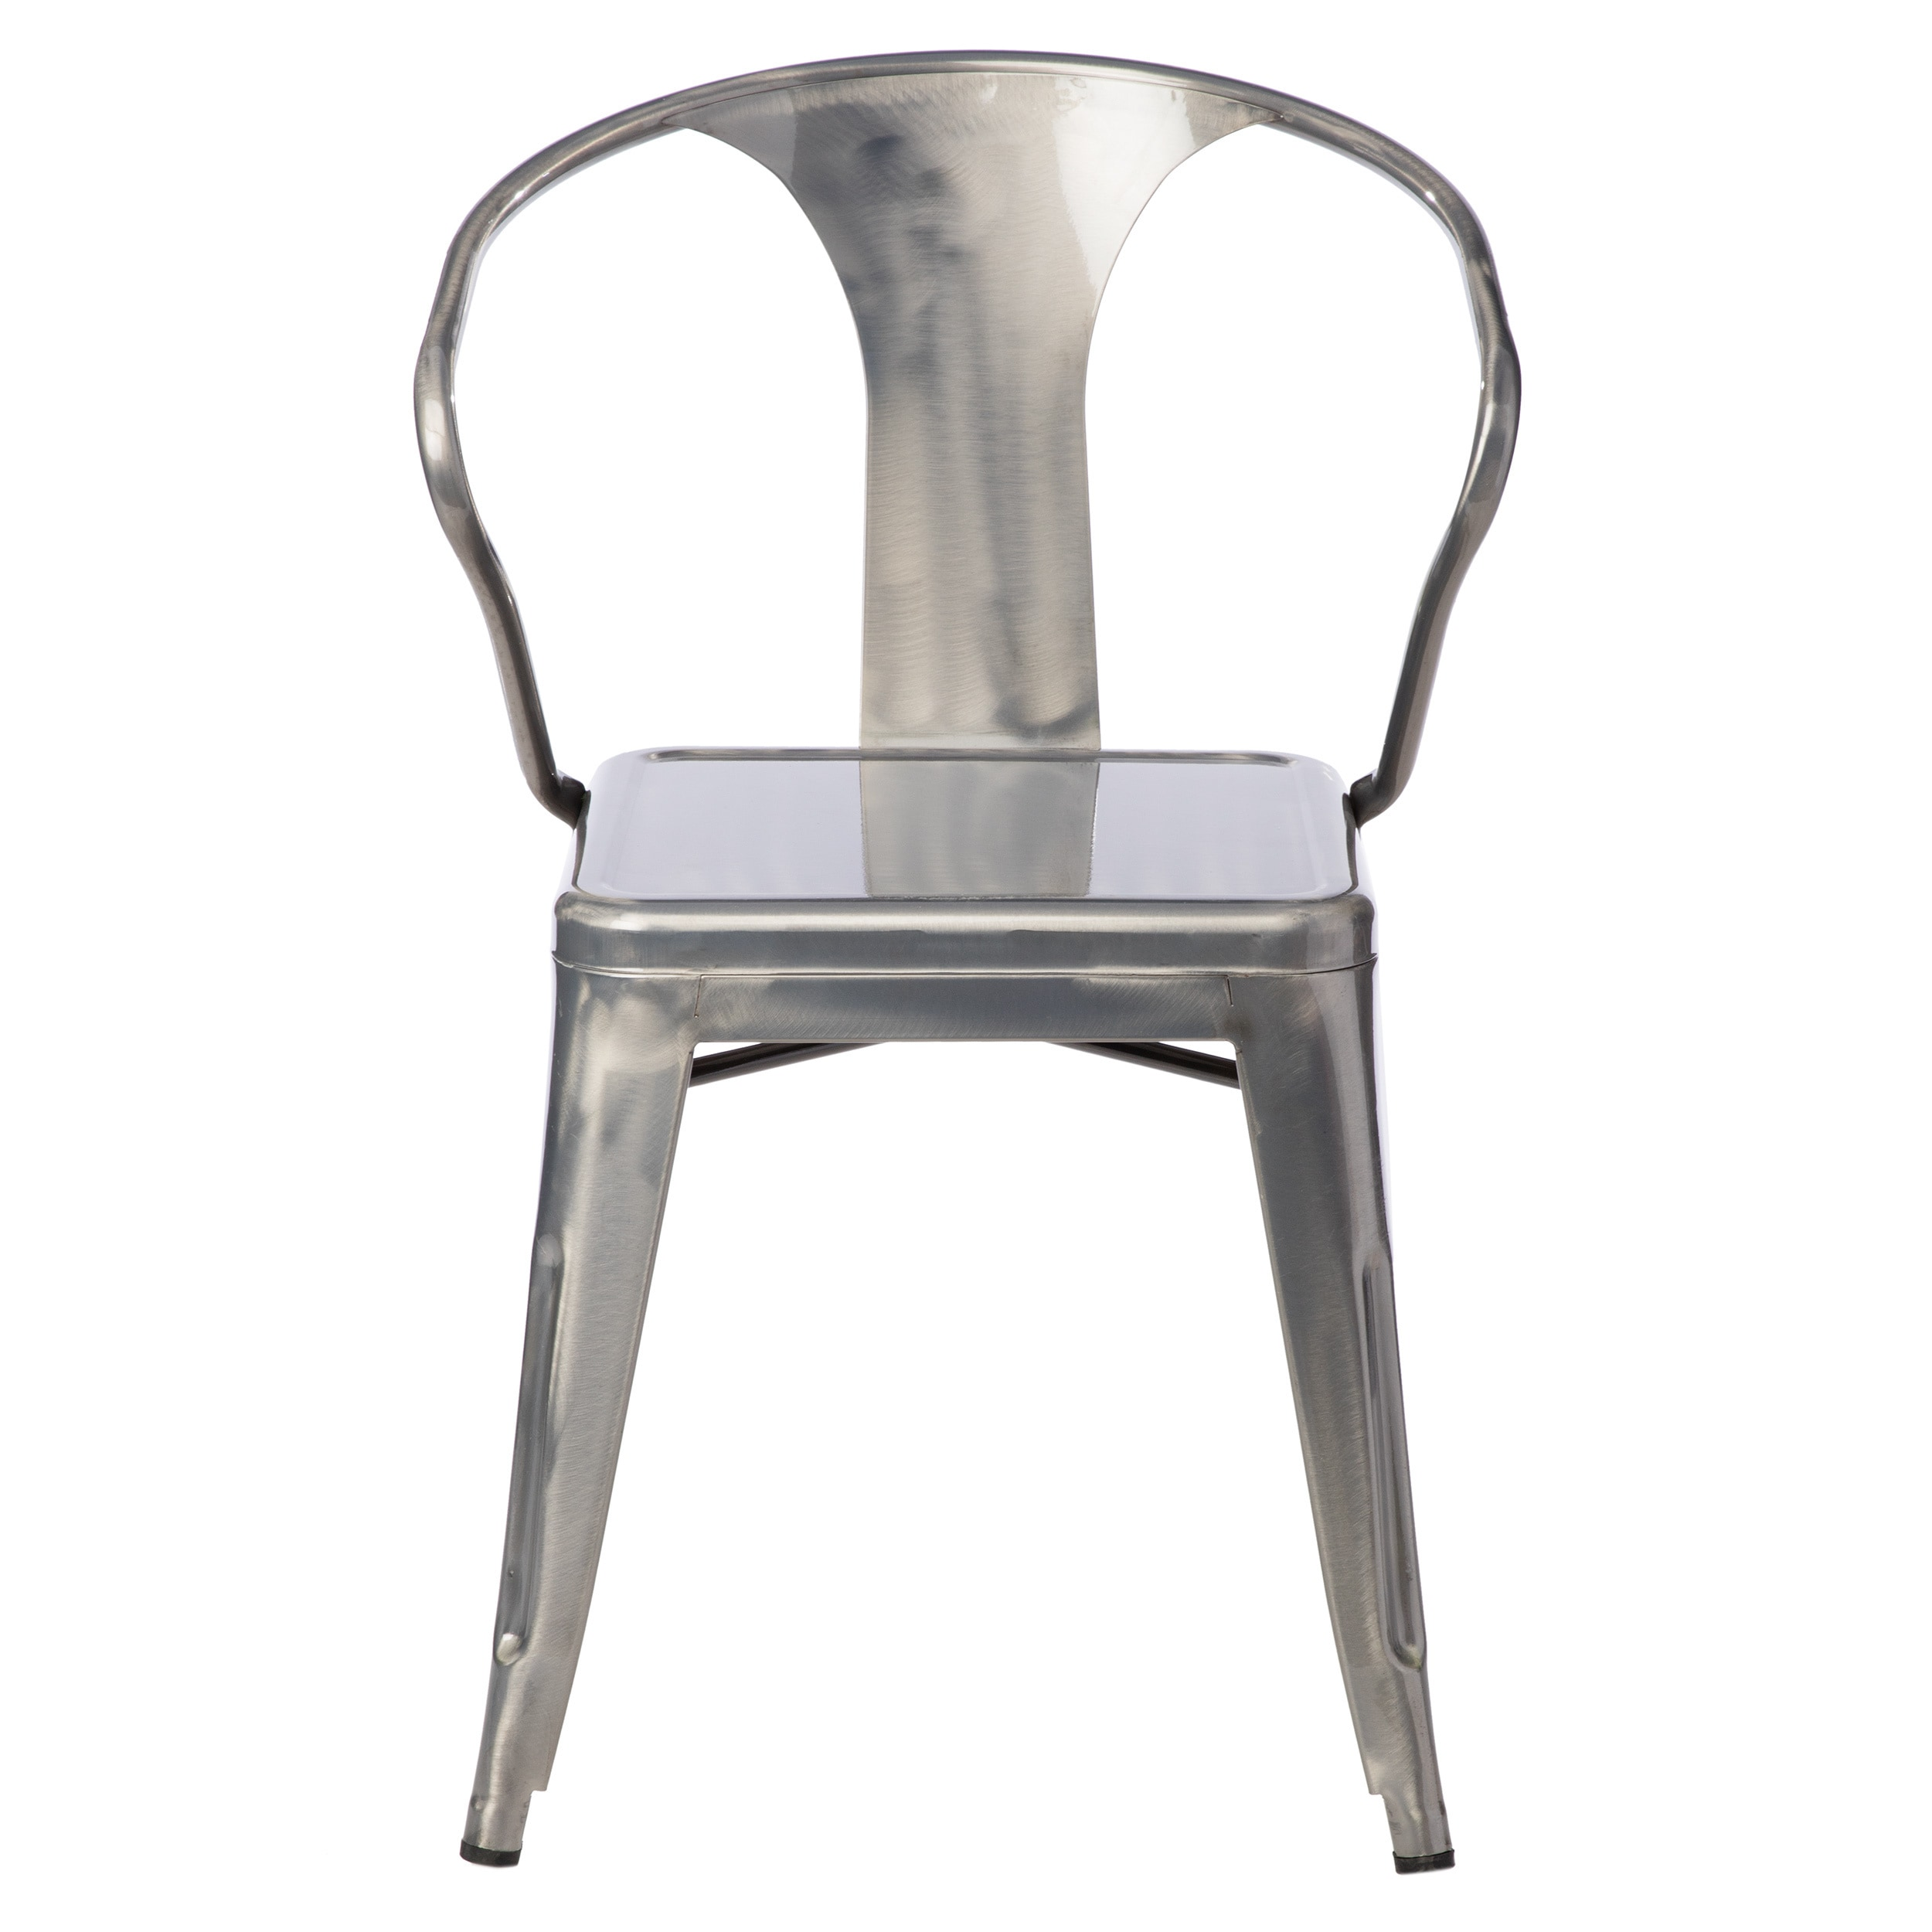 Carbon Loft Gunmetal Tabouret Stacking Chair (Set Of 4)   Free Shipping  Today   Overstock.com   16597922